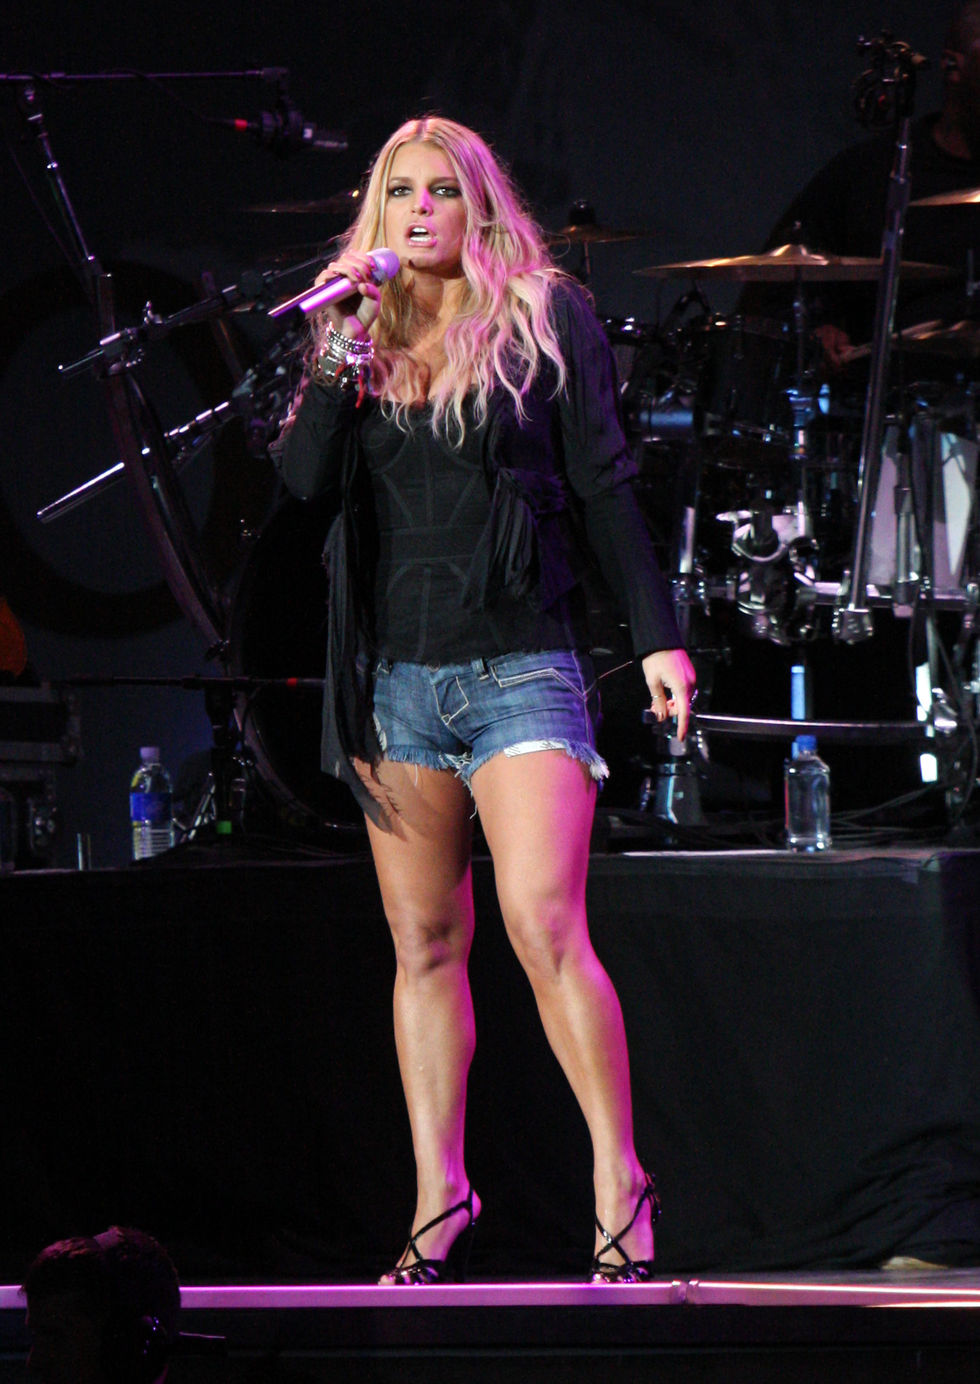 jessica-simpson-performs-at-cricket-wireless-amphitheatre-01